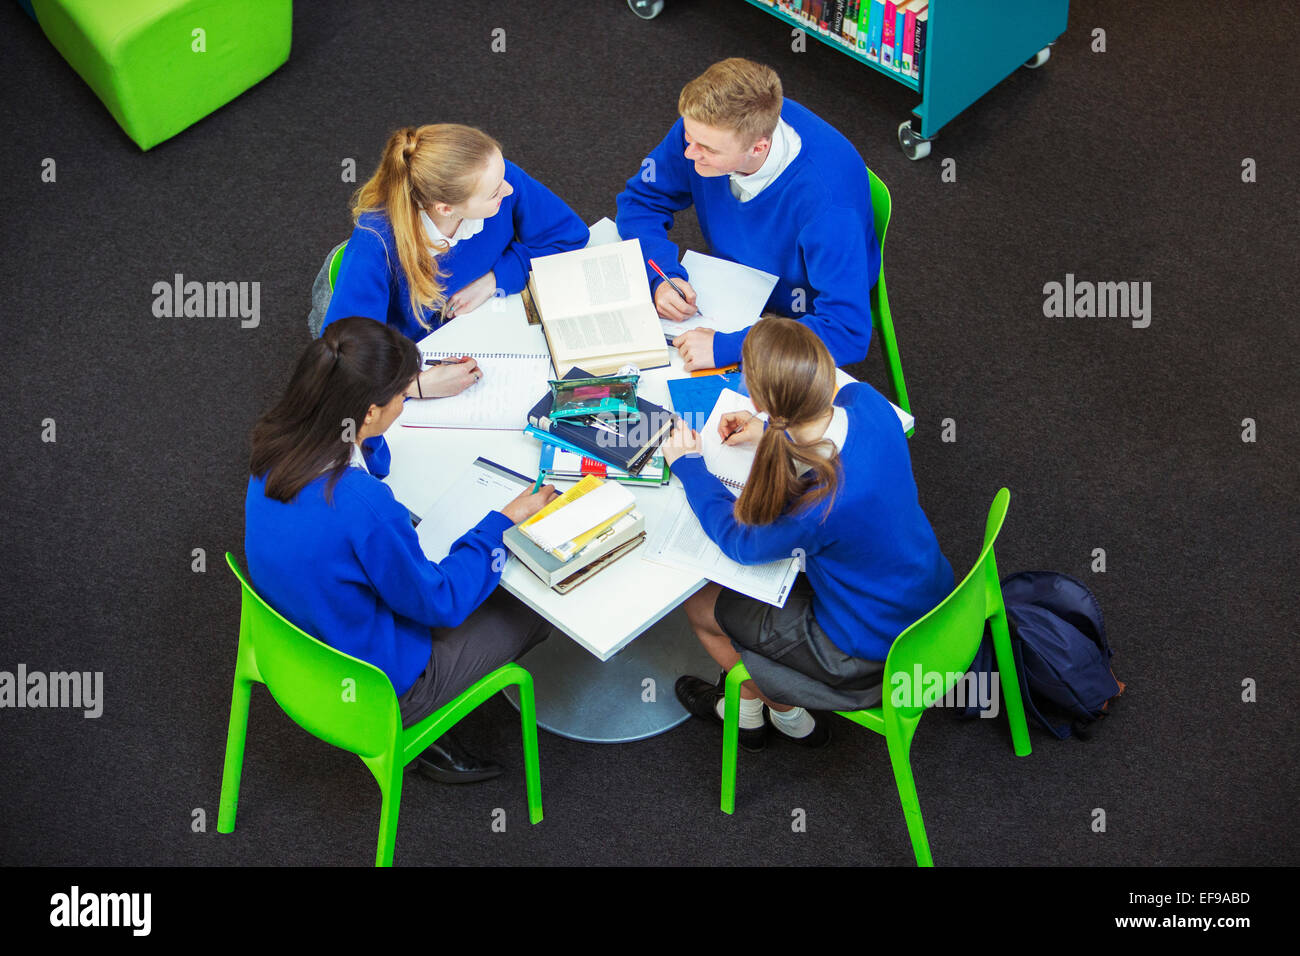 Overhead view of four students doing their homework at round table - Stock Image